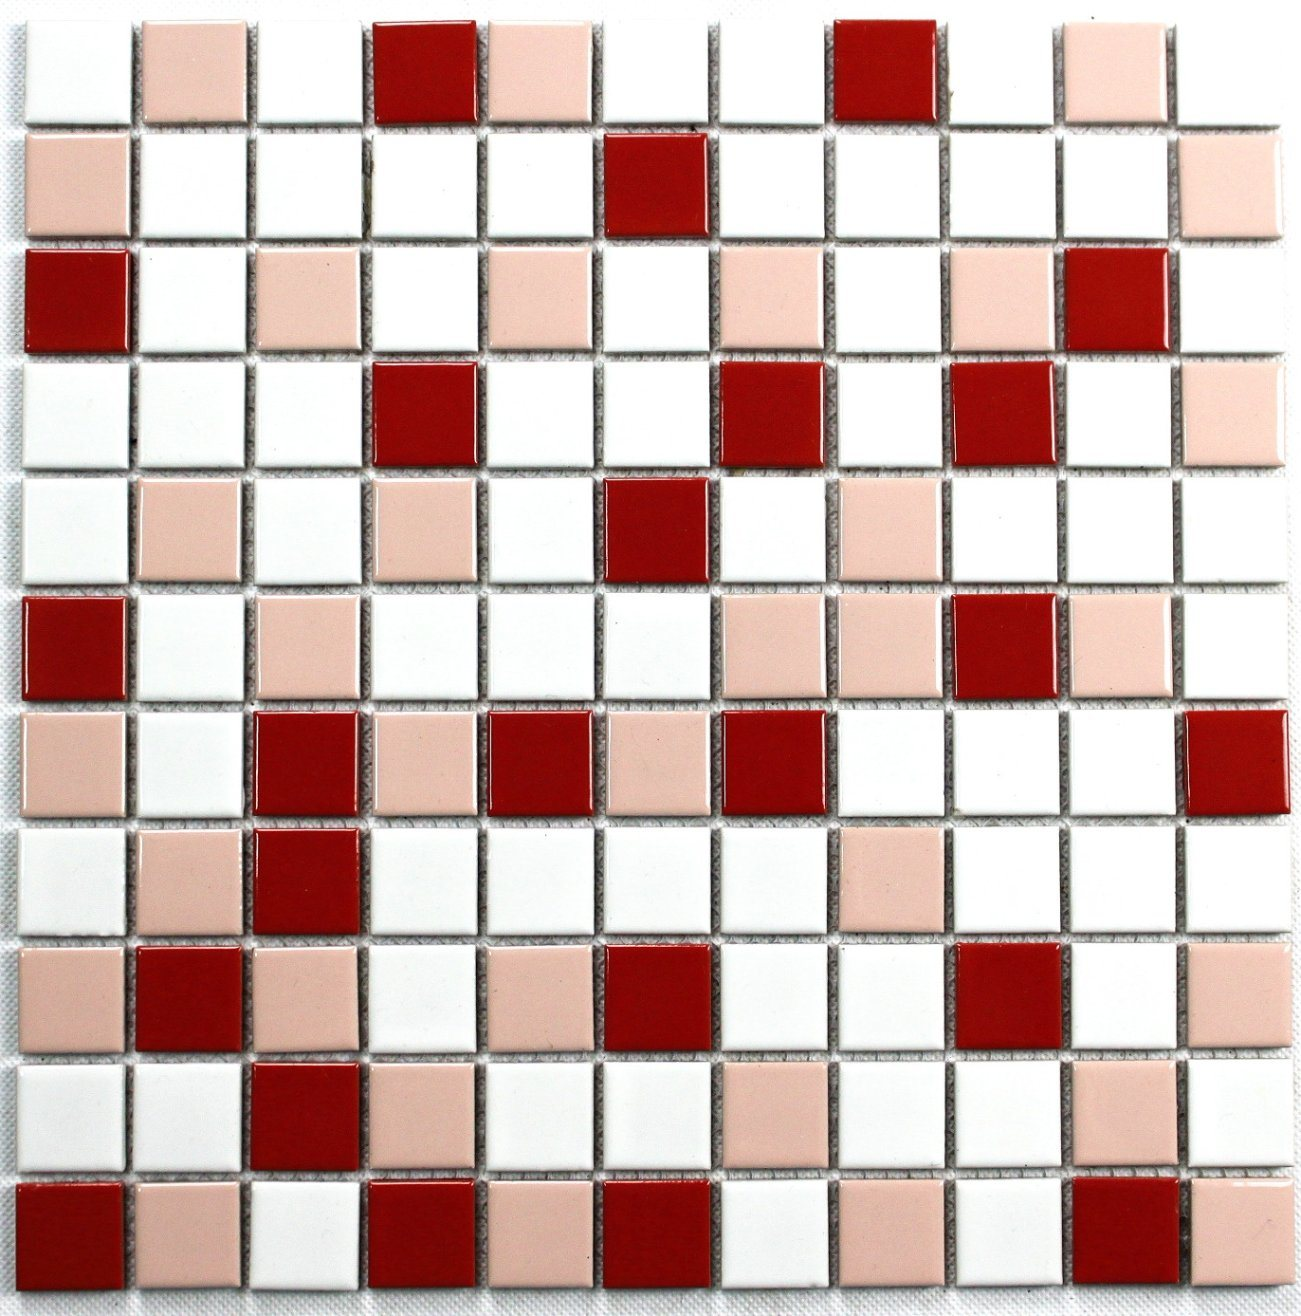 China Toilet Mosaic Tiles Tv Background Wall Pink White Red Bathroom Slip Proof Floor Tiles Kitchen Wall Tiles China Mosaic Toilet Mosaic